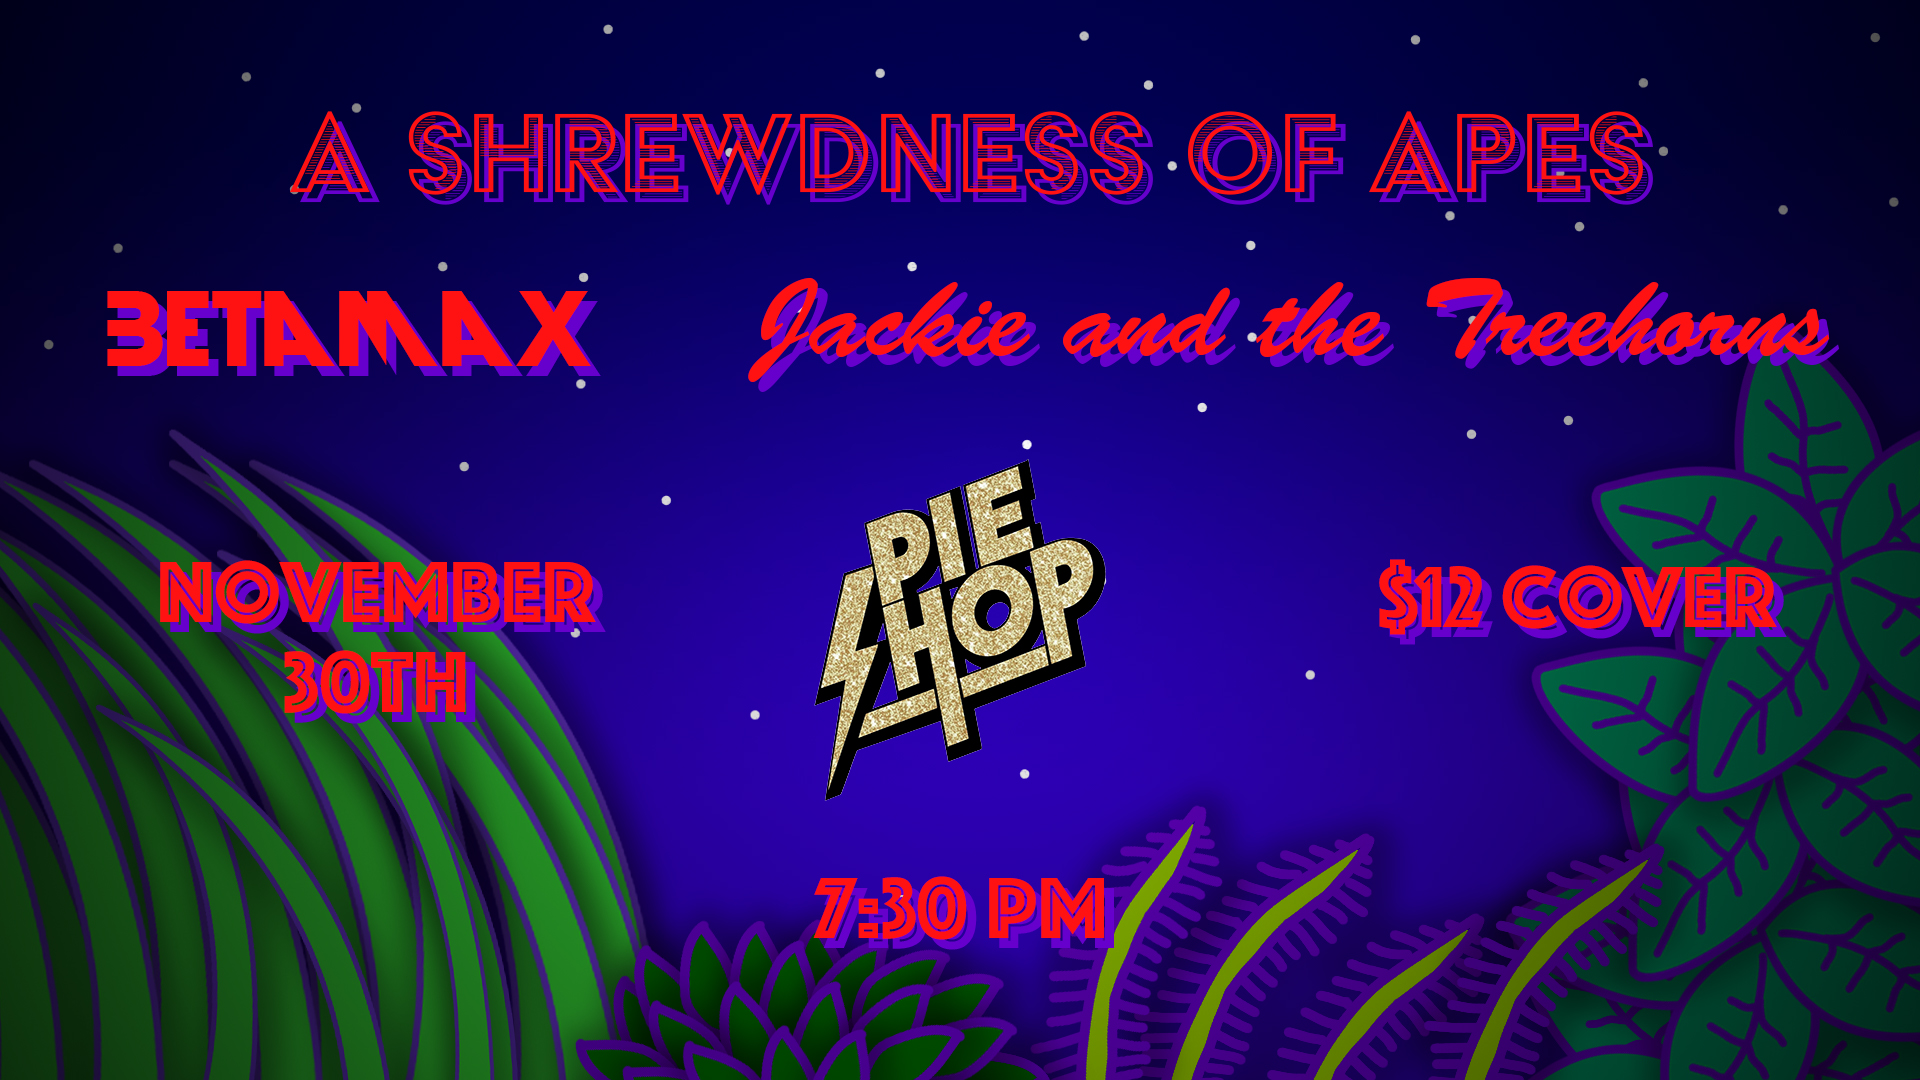 Jackie and The Treehorns @ The Pie Shop